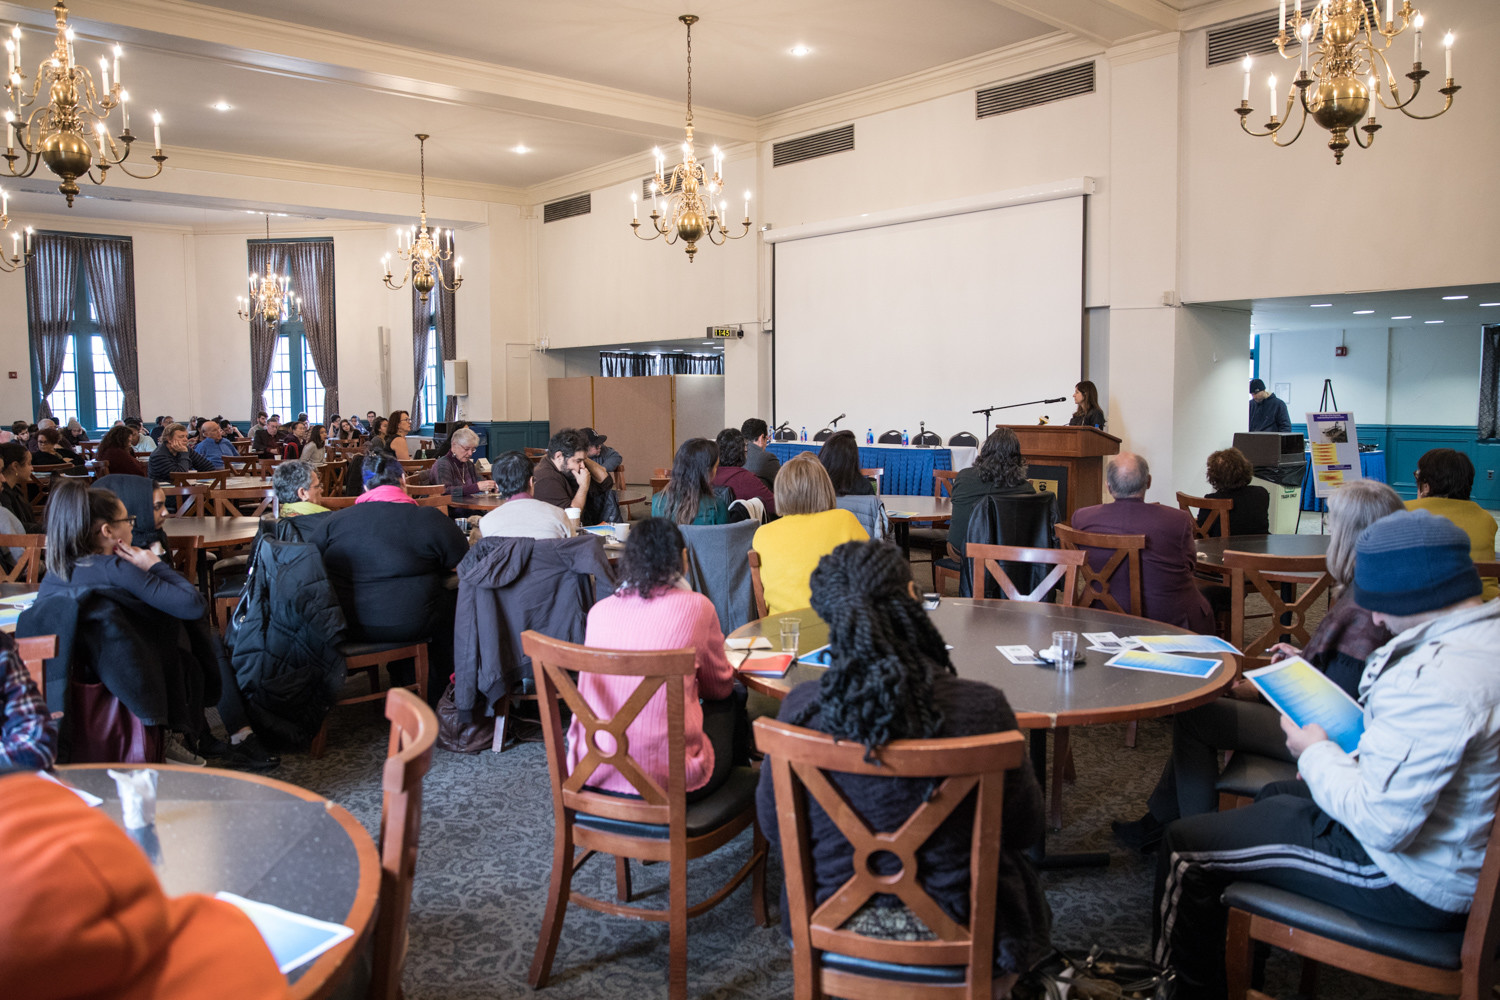 Lehman College organized a one-day conference on the crisis facing Puerto Rico after Hurricane Maria as a matter so urgent, the school held the conference earlier this month as a semester wound down instead of waiting for spring.